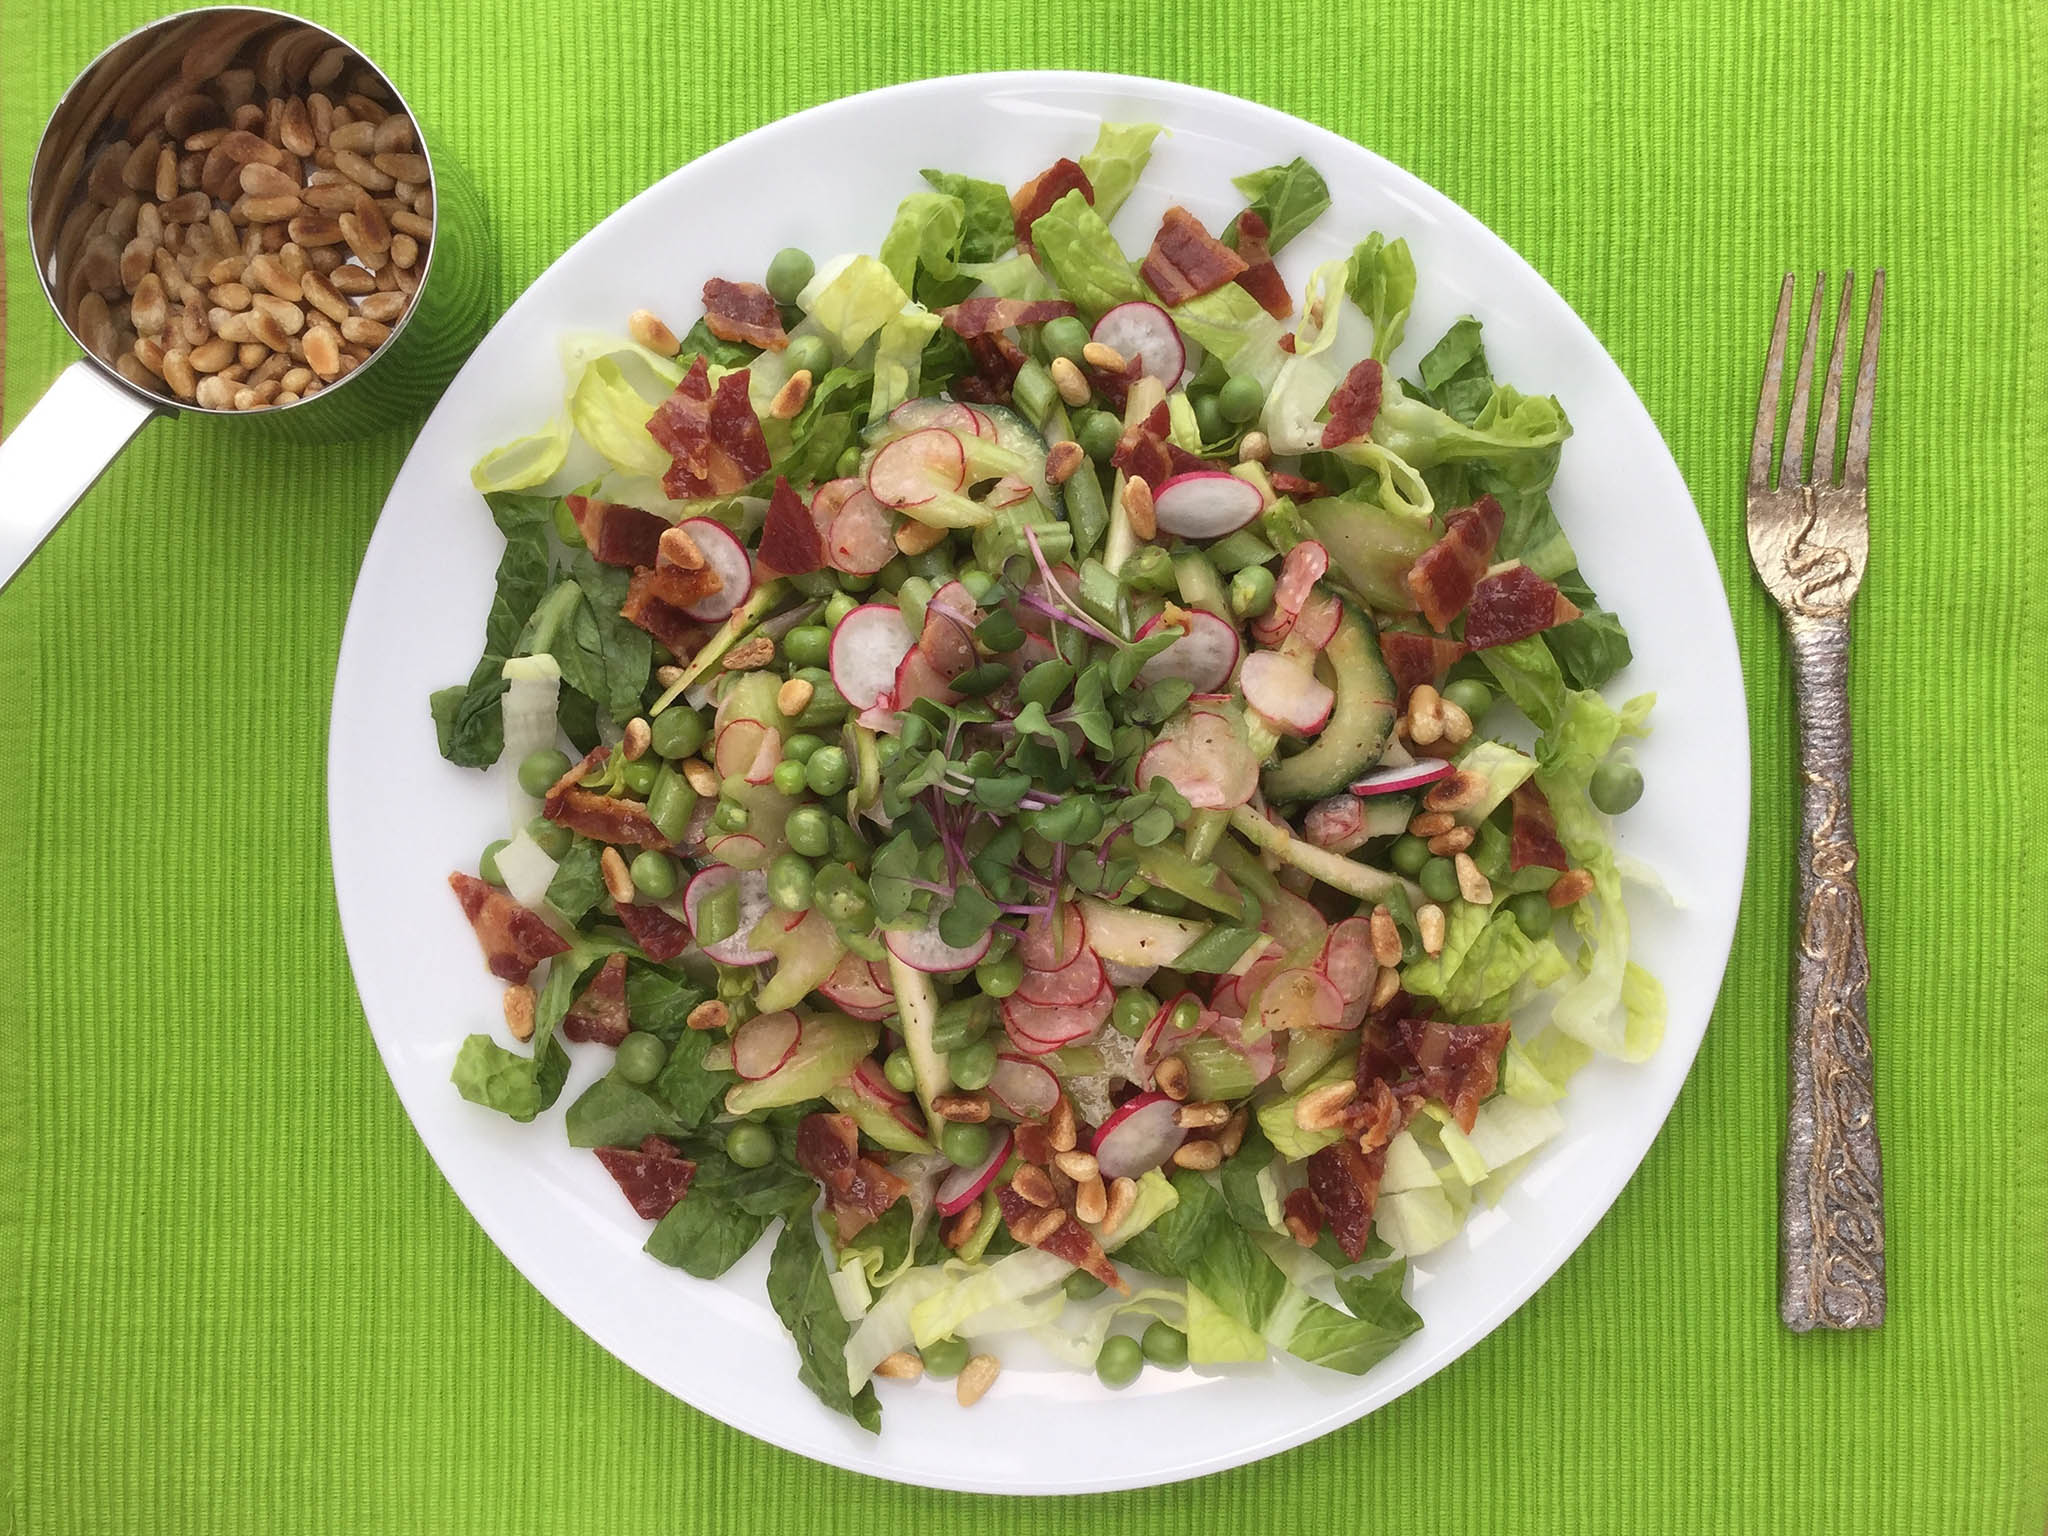 How to make pea, green bean and bacon salad | The Independentindependent_brand_ident_LOGOUntitled